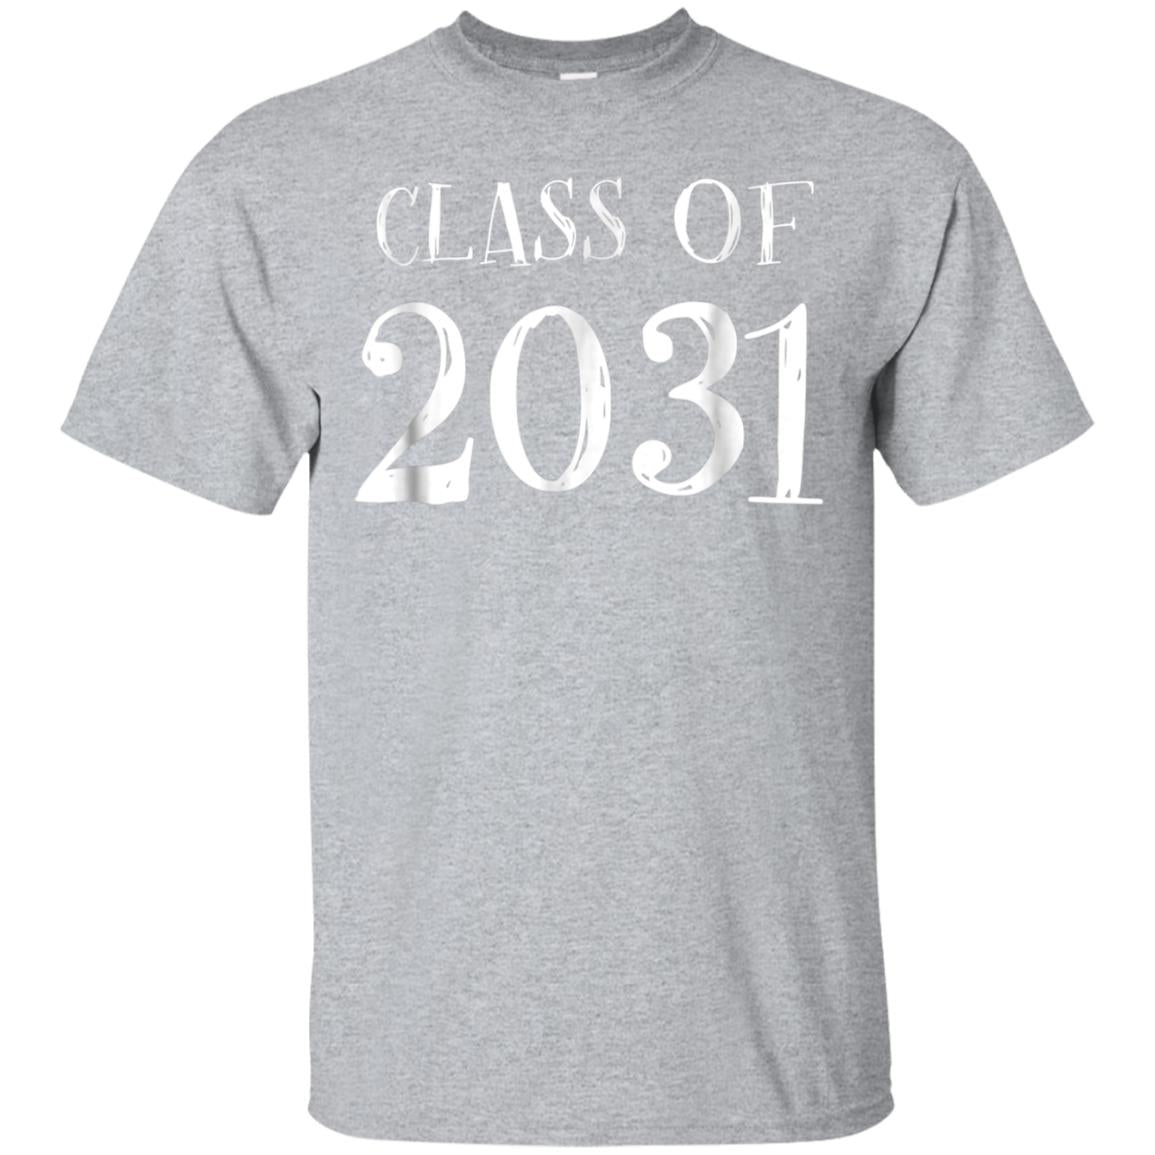 Class of 2031 Grow with me Shirt - First Day of School Shirt 99promocode